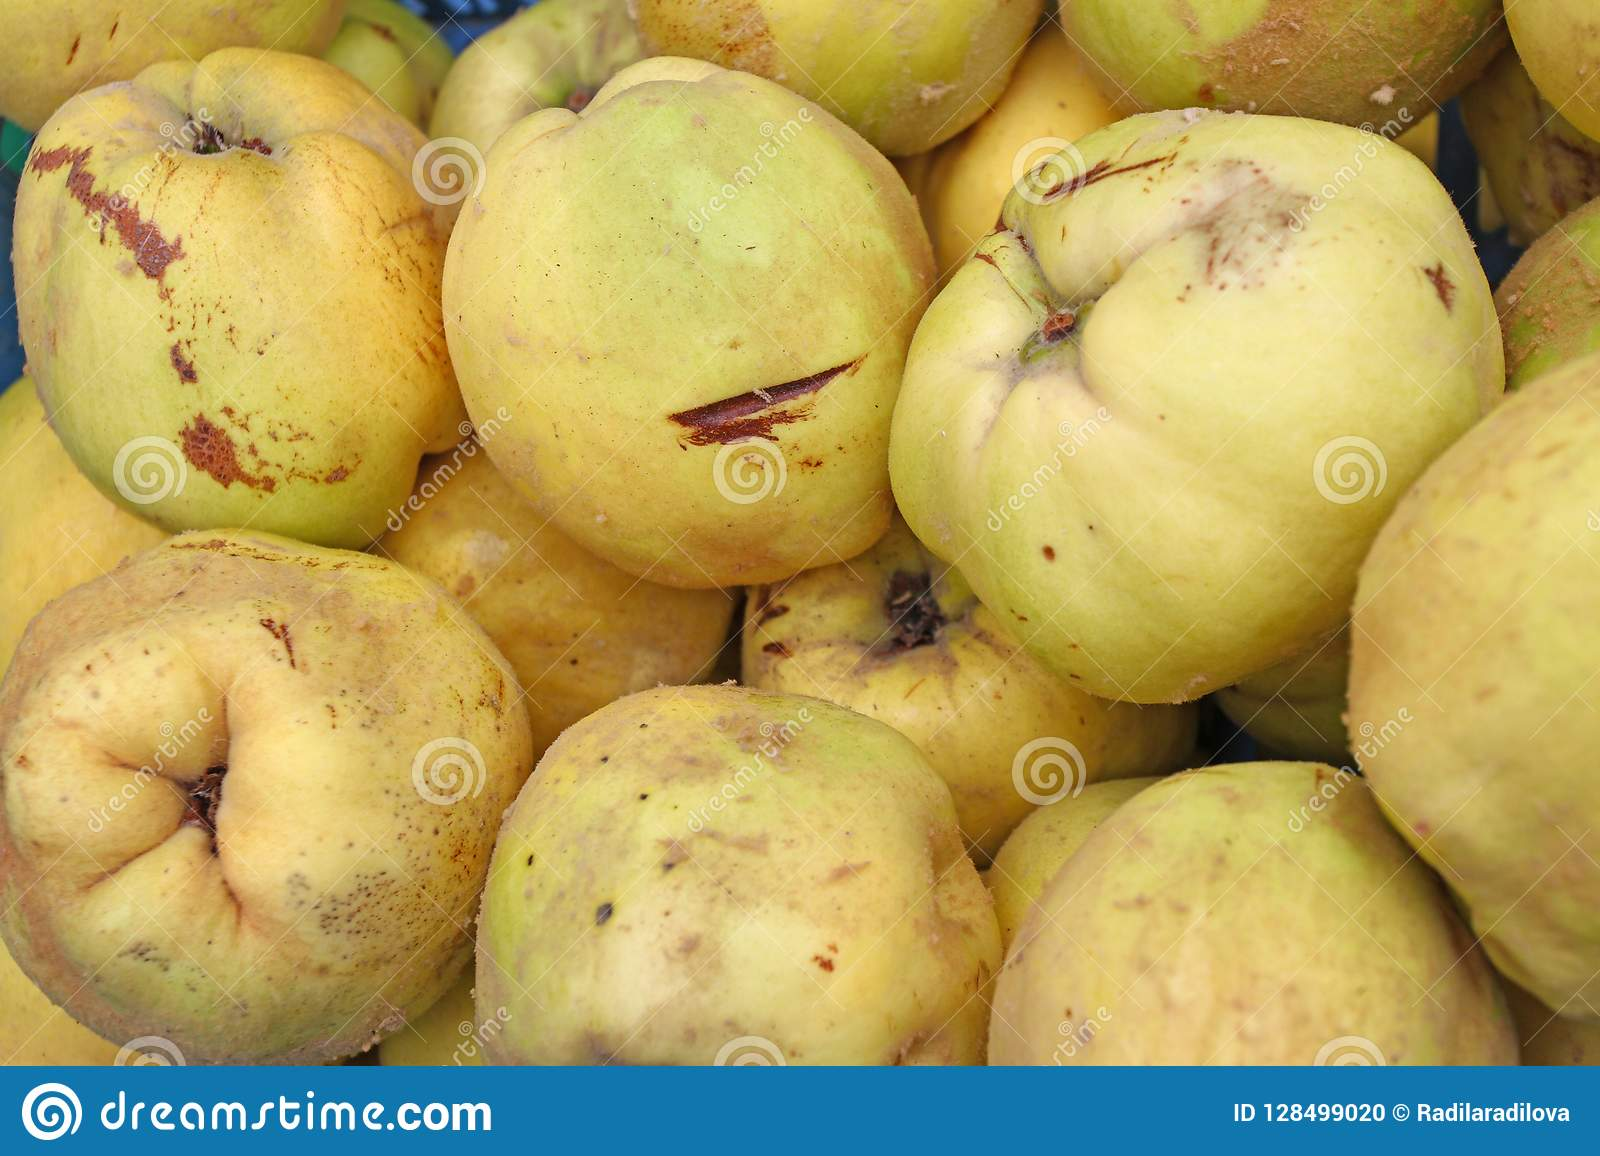 Quince. Fresh organic quince. Quince fruit background texture. Yellow quinces wallpaper. Healthy